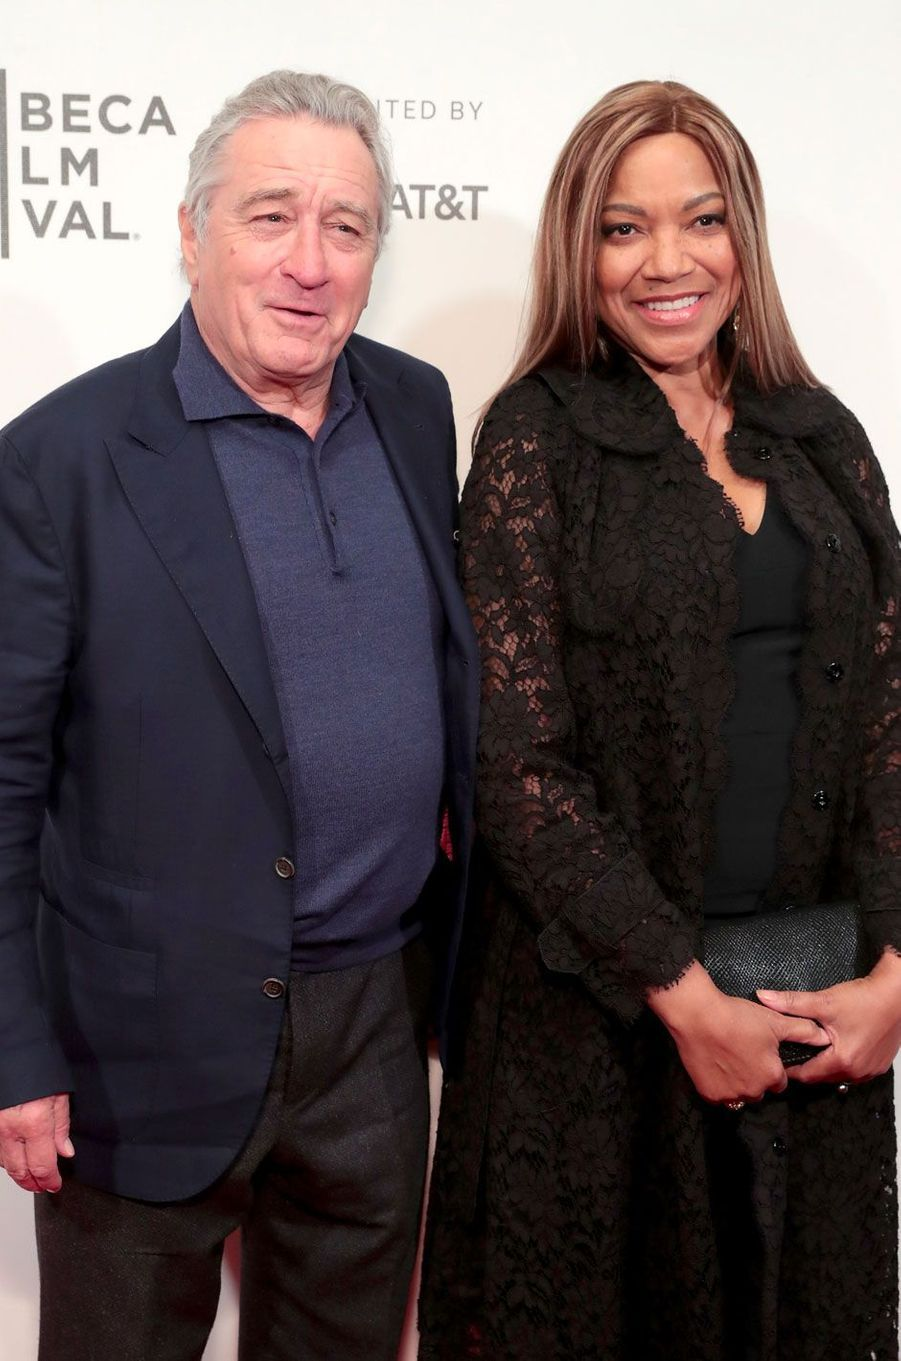 Robert de Niro et Grace Hightower Cindy Ord / GETTY IMAGES NORTH AMERICA / AFP